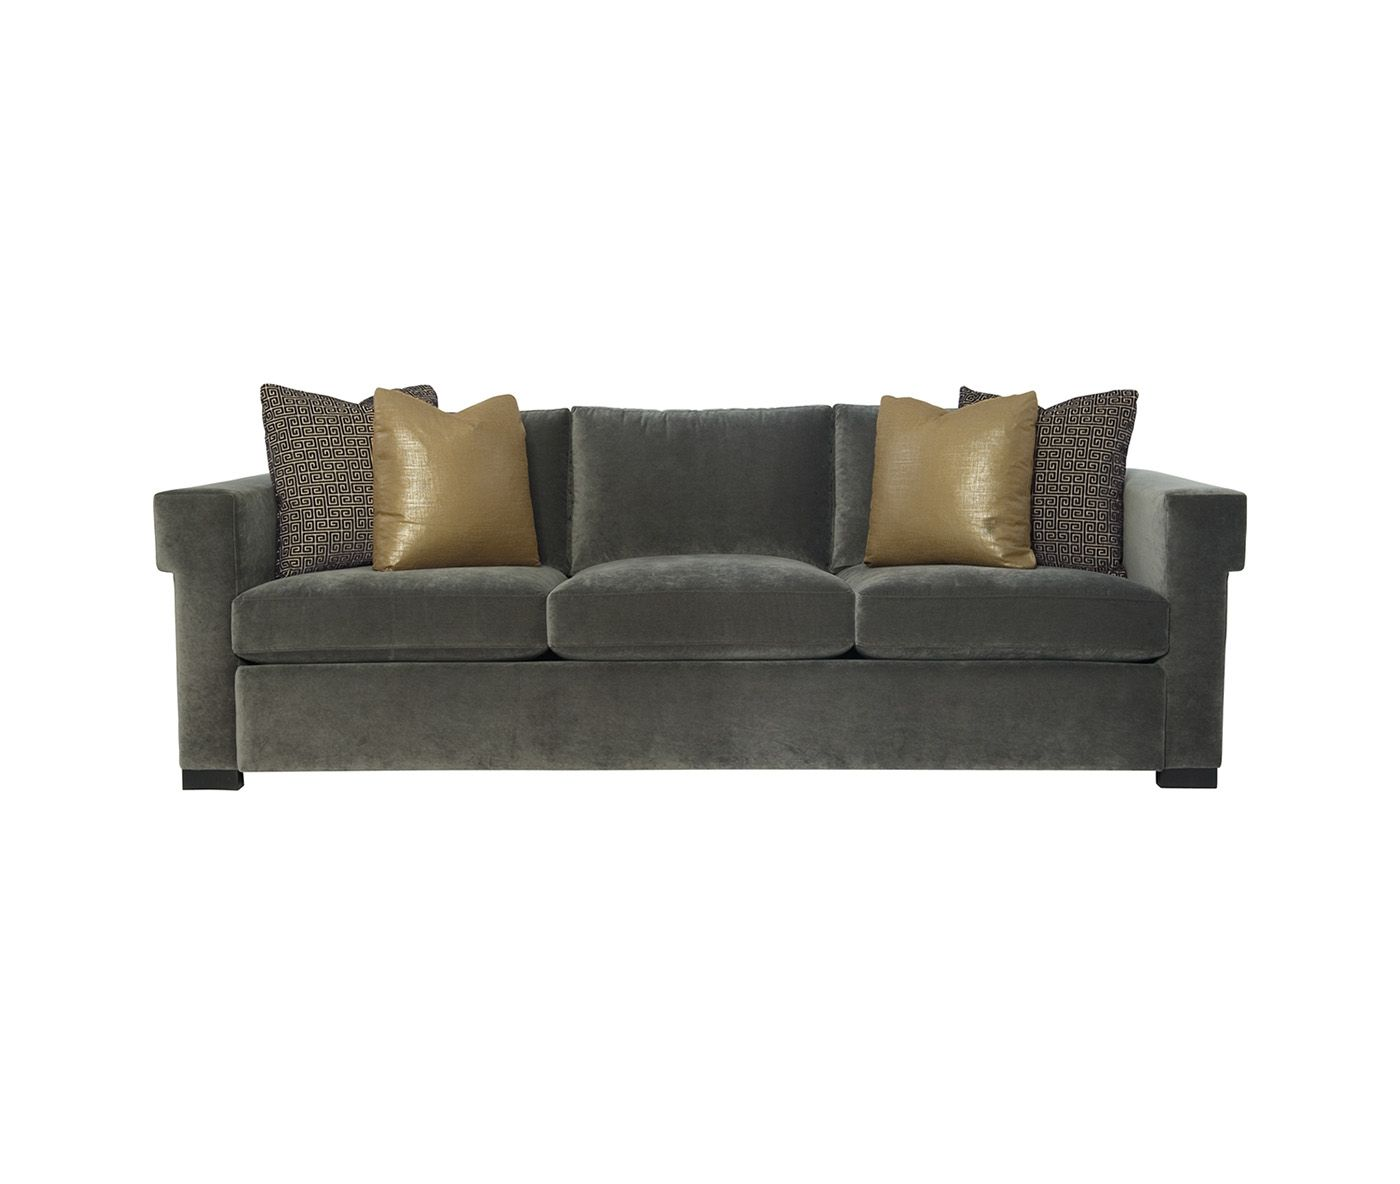 Bernhardt kenworth sofa set collier 39 s furniture expo for Bernhardt furniture